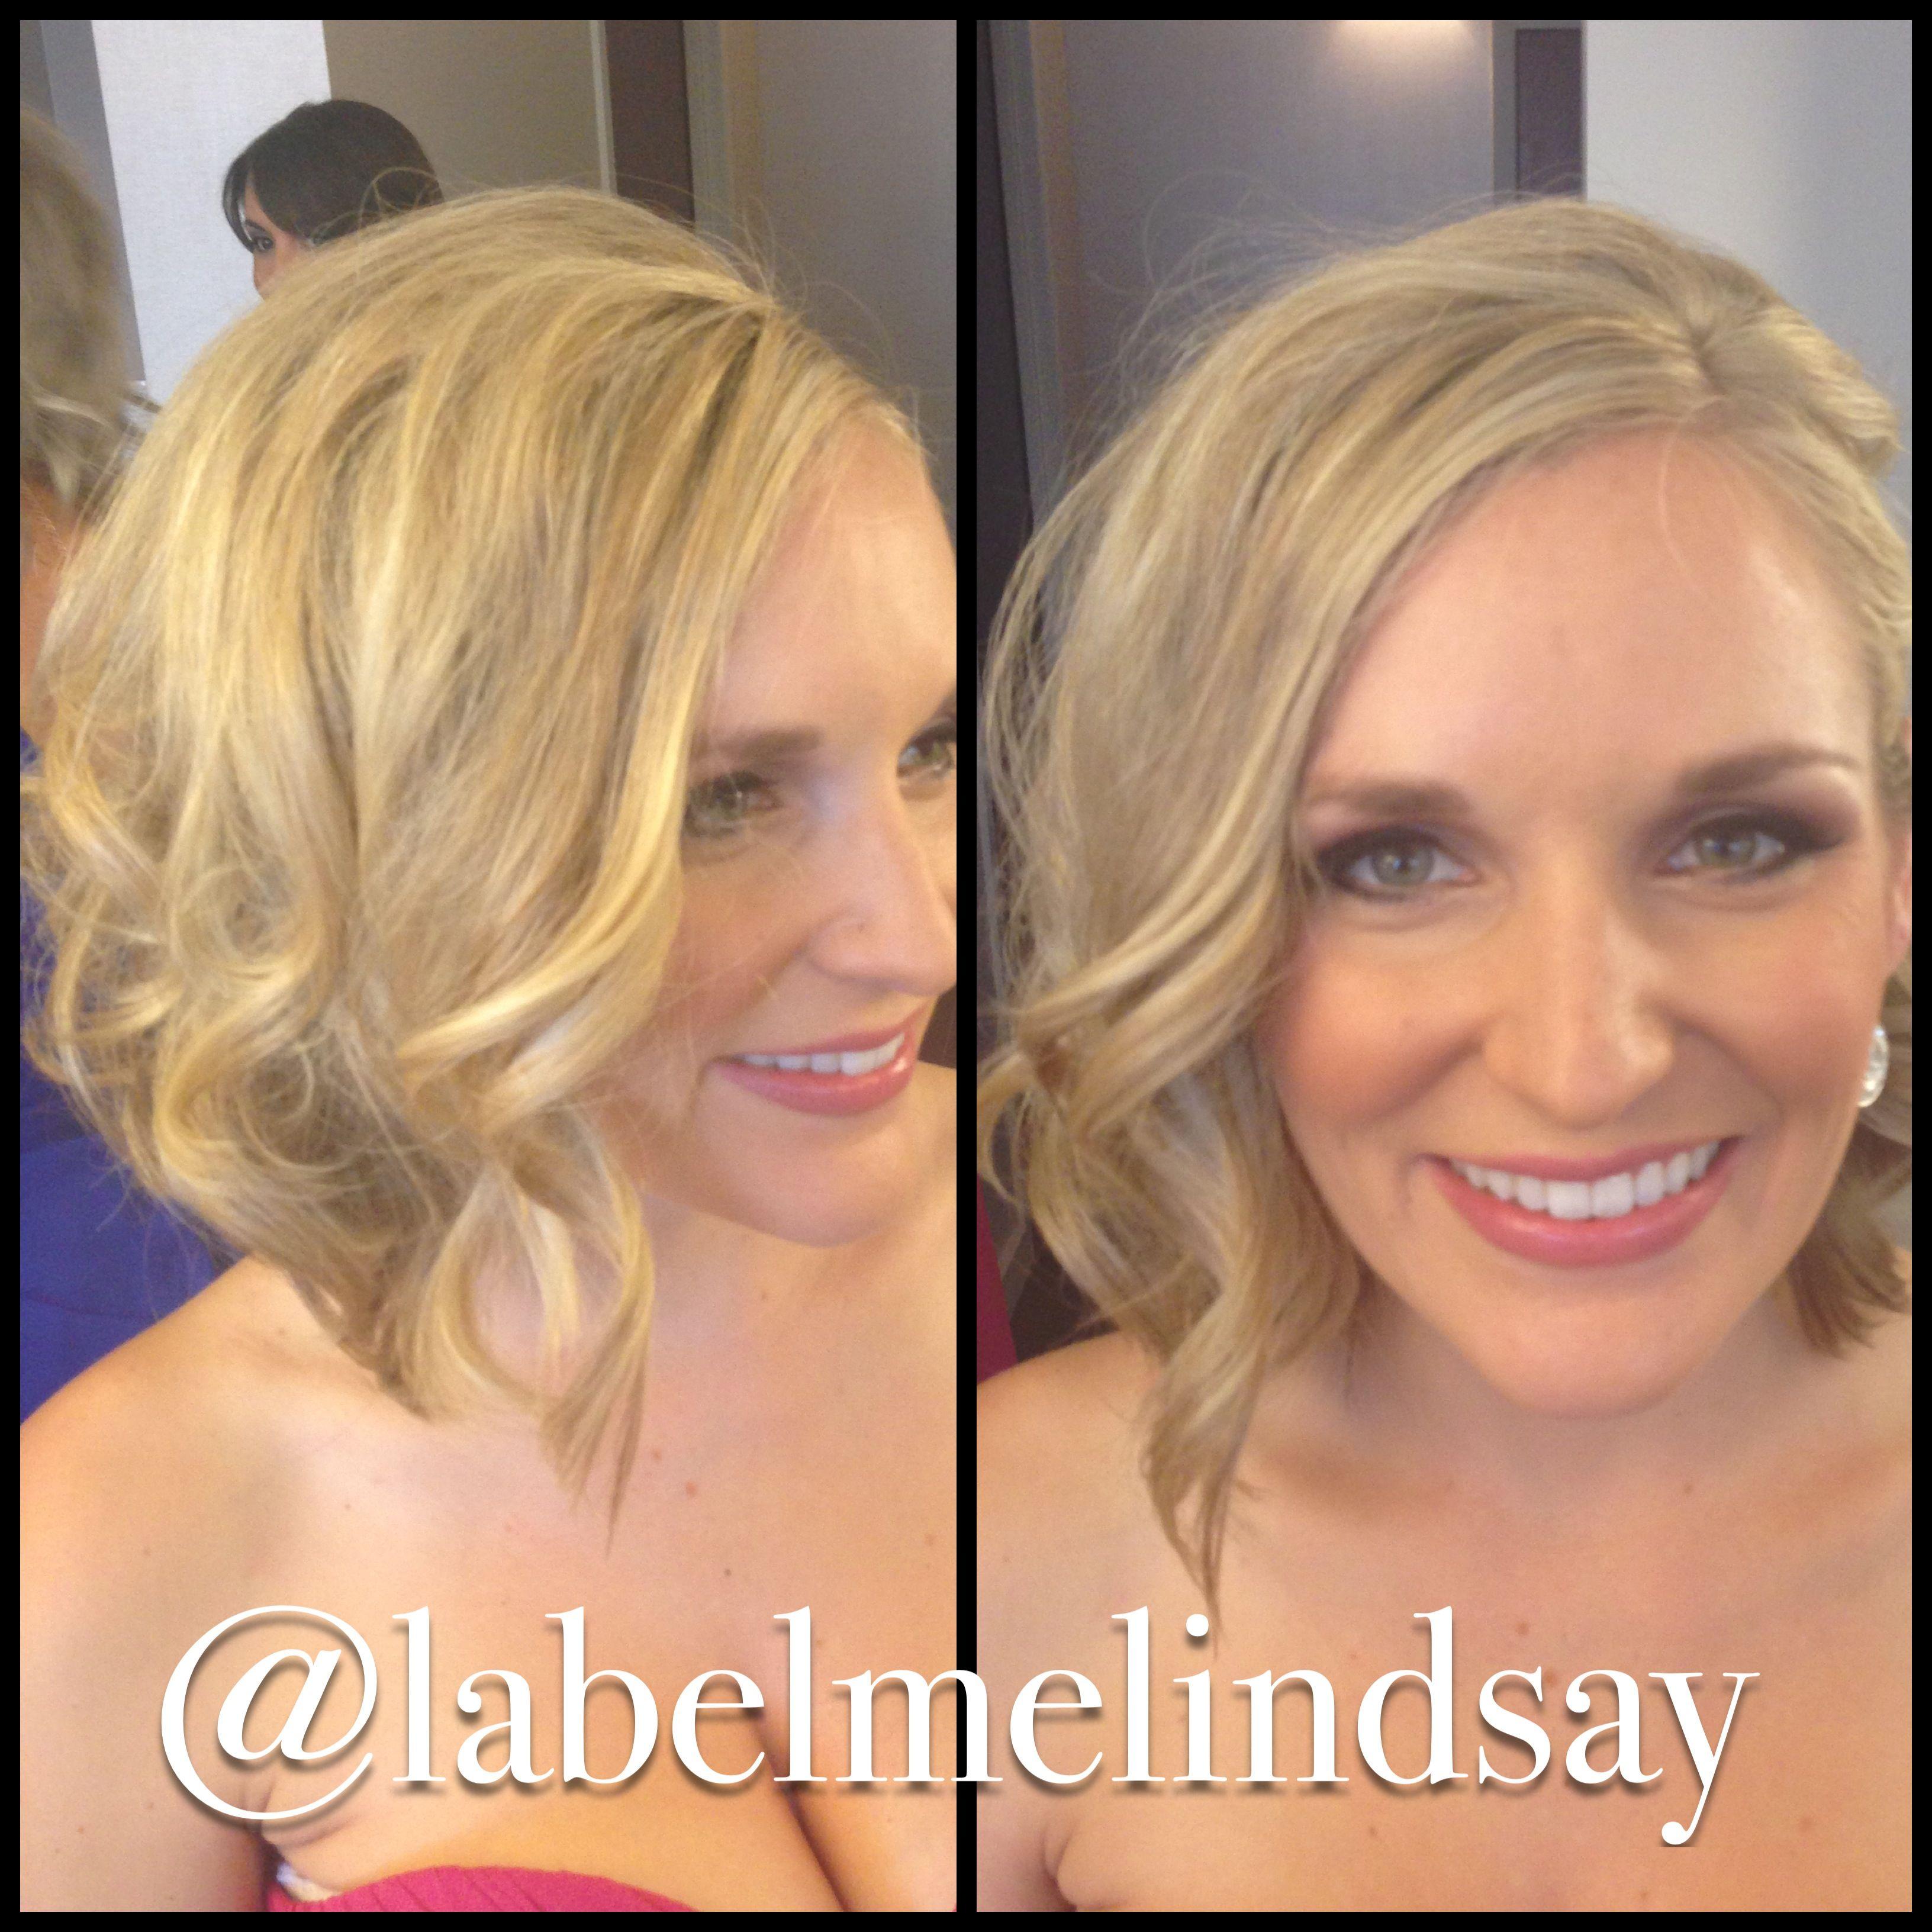 Cute short hair option for bridesmaids wedding hair hairstyles